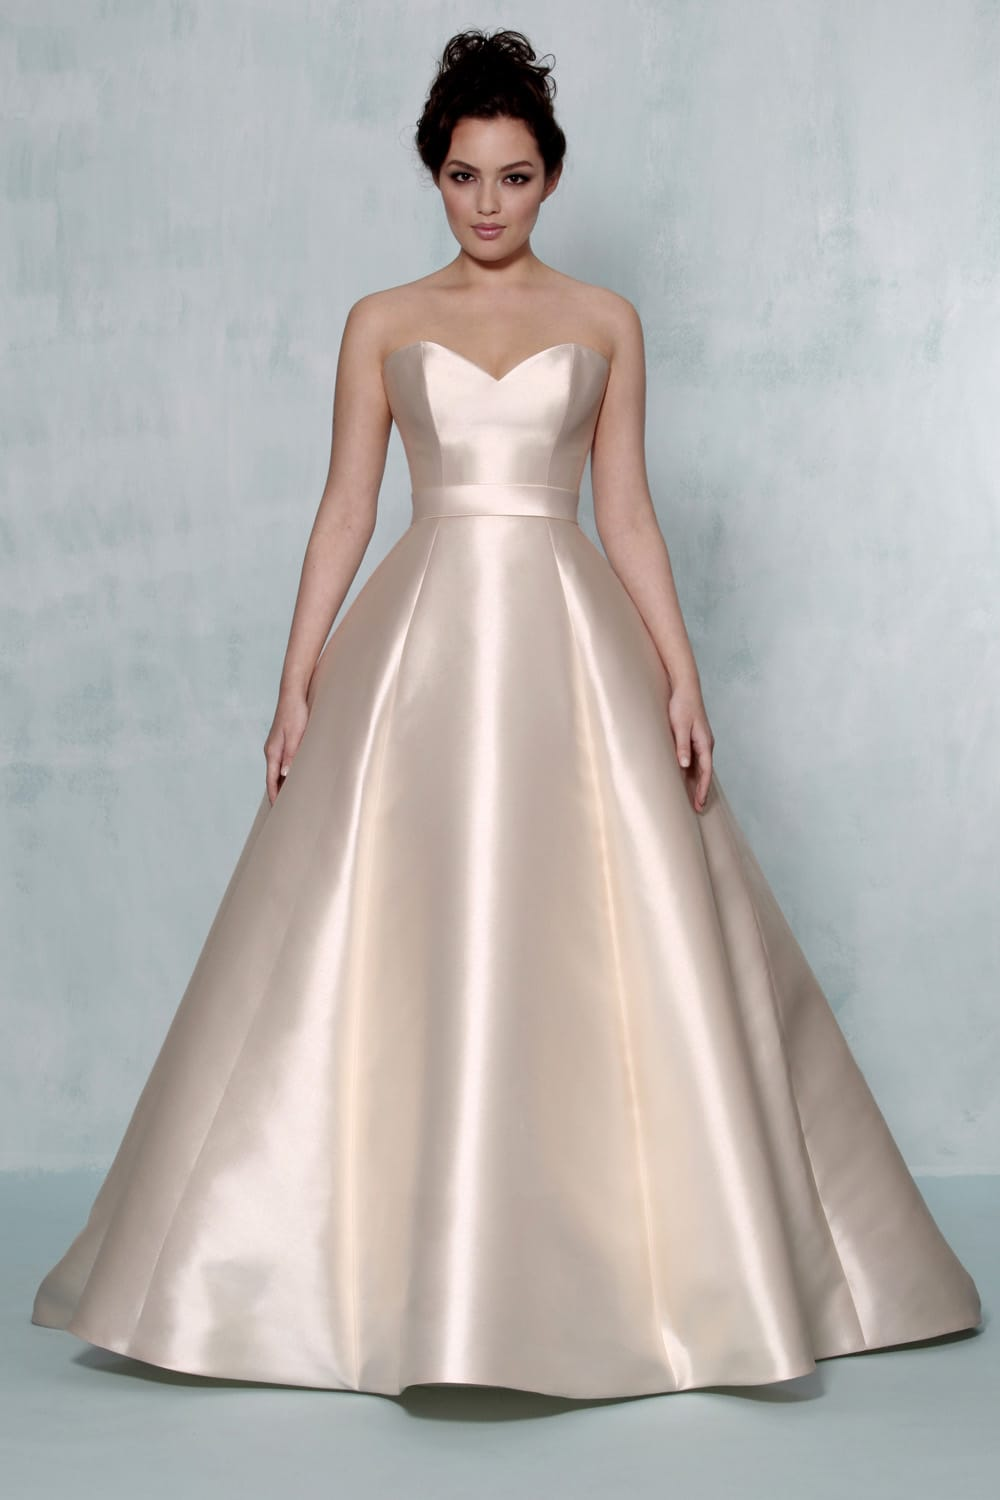 Augusta jones anna sell my wedding dress online sell for Sell wedding dress online